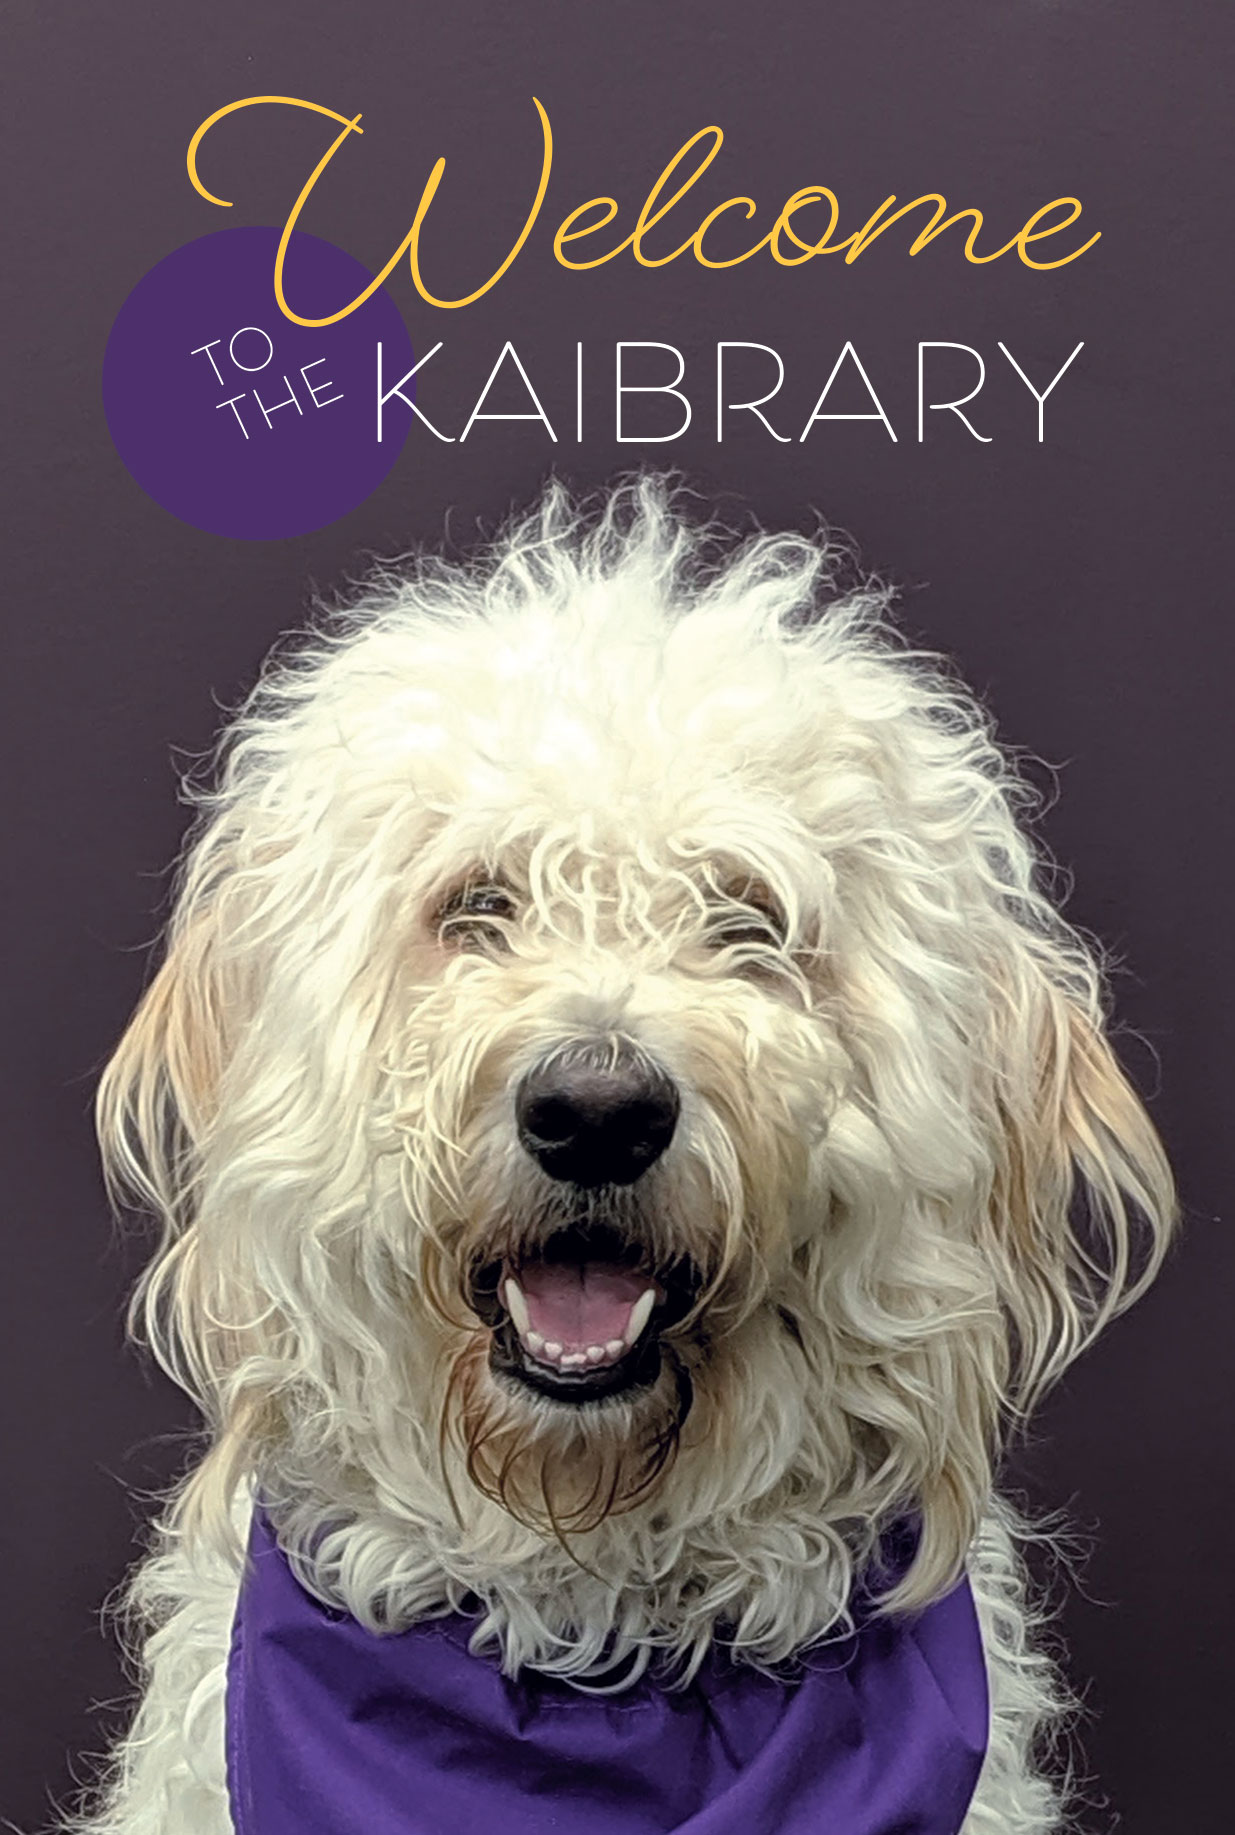 Join us for Kaibrary Tours on Wednesday, September 1